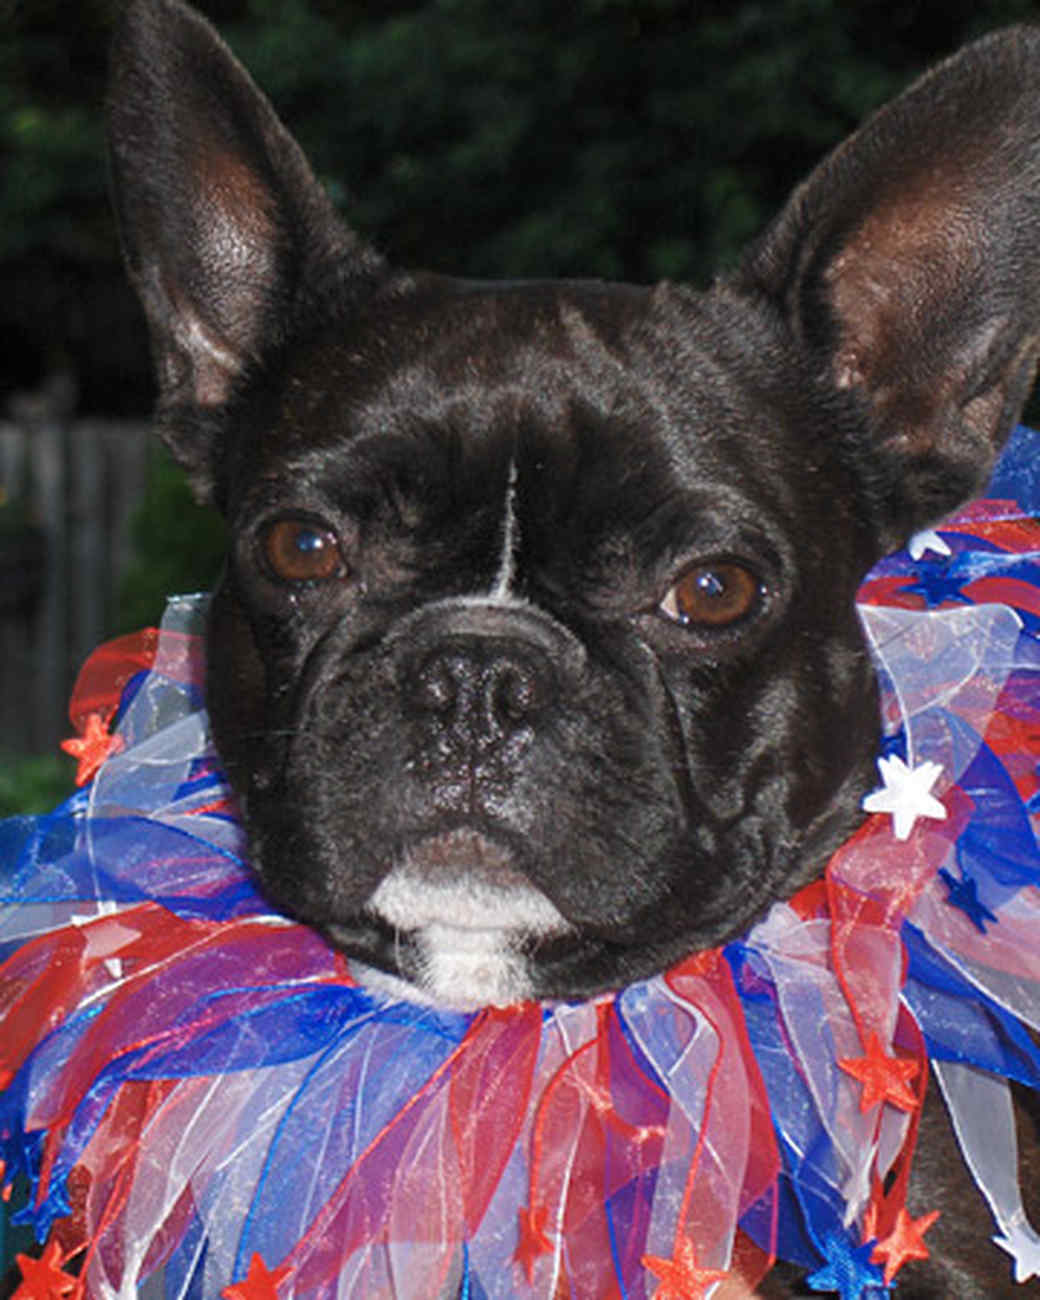 pets_frenchies_ori00093467.jpg